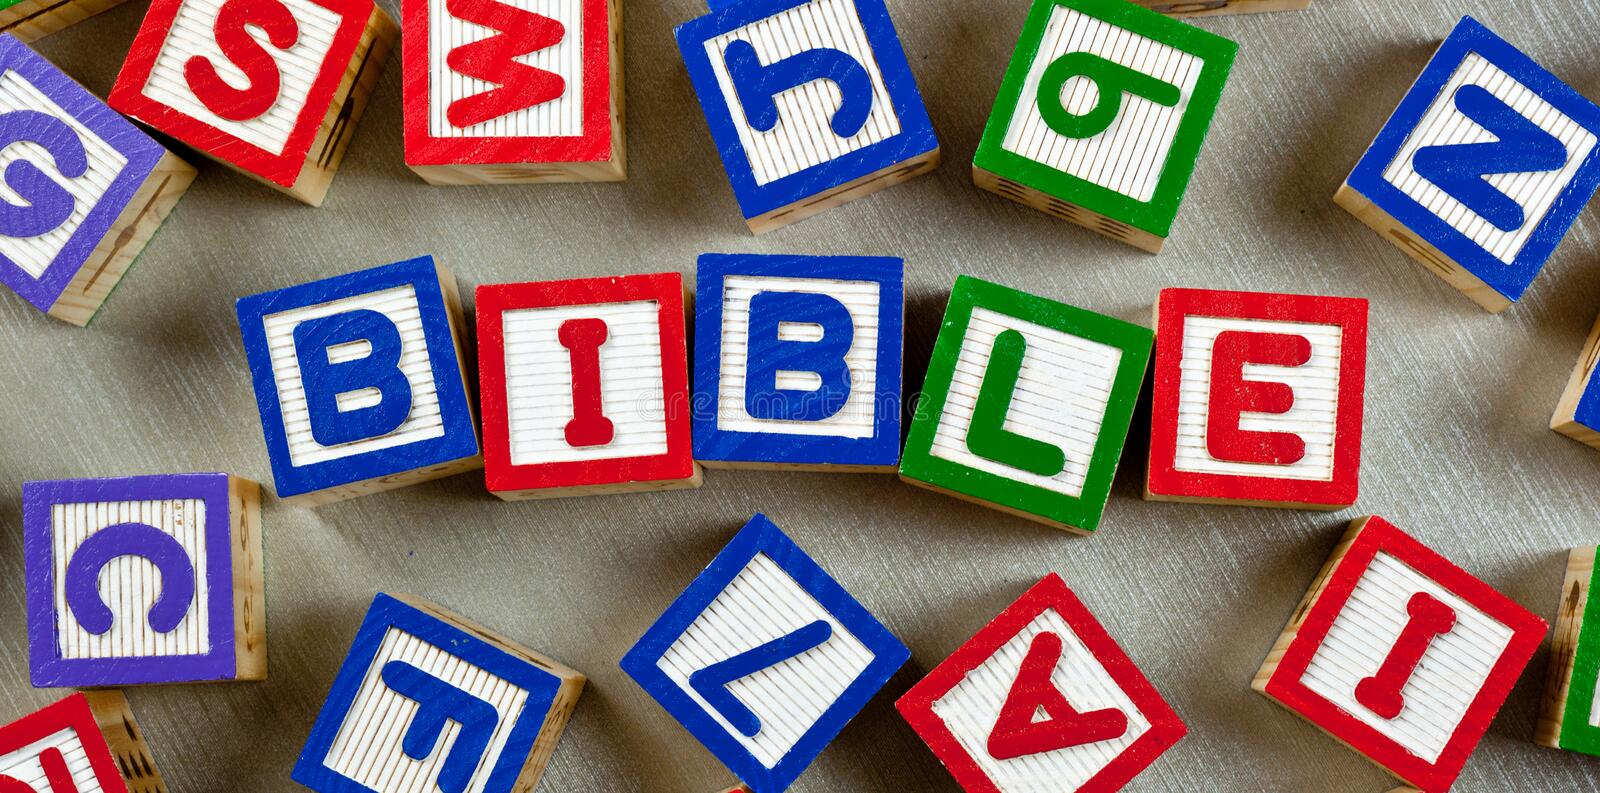 Download Bible stock photo. Image of colorful, alphabet, wooden - 23973898